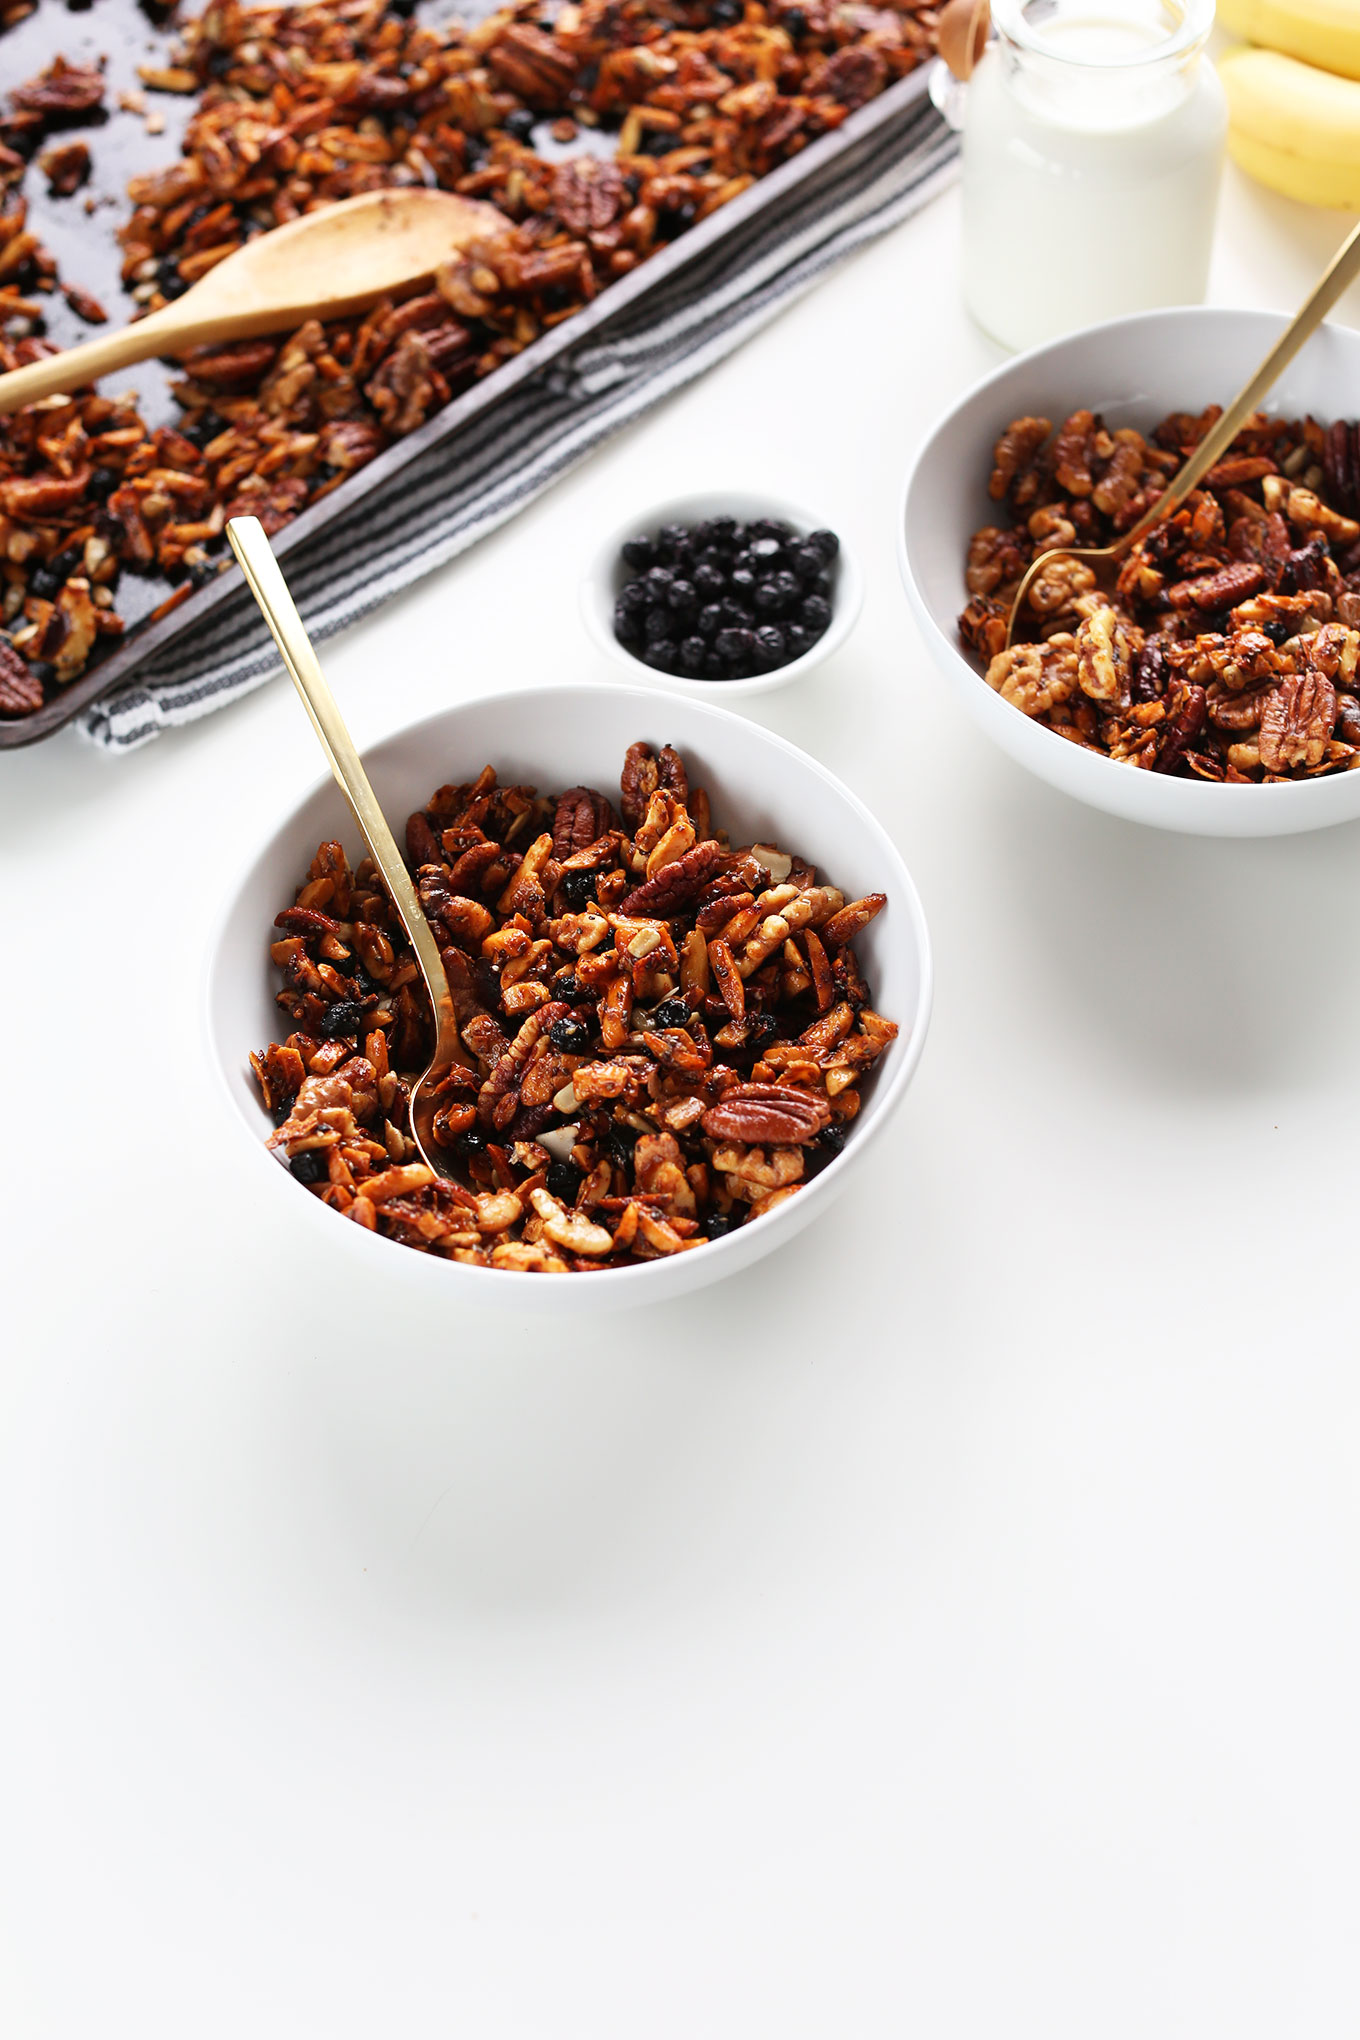 Bowls of our amazing vegan Grain-Free Granola recipe with dried blueberries